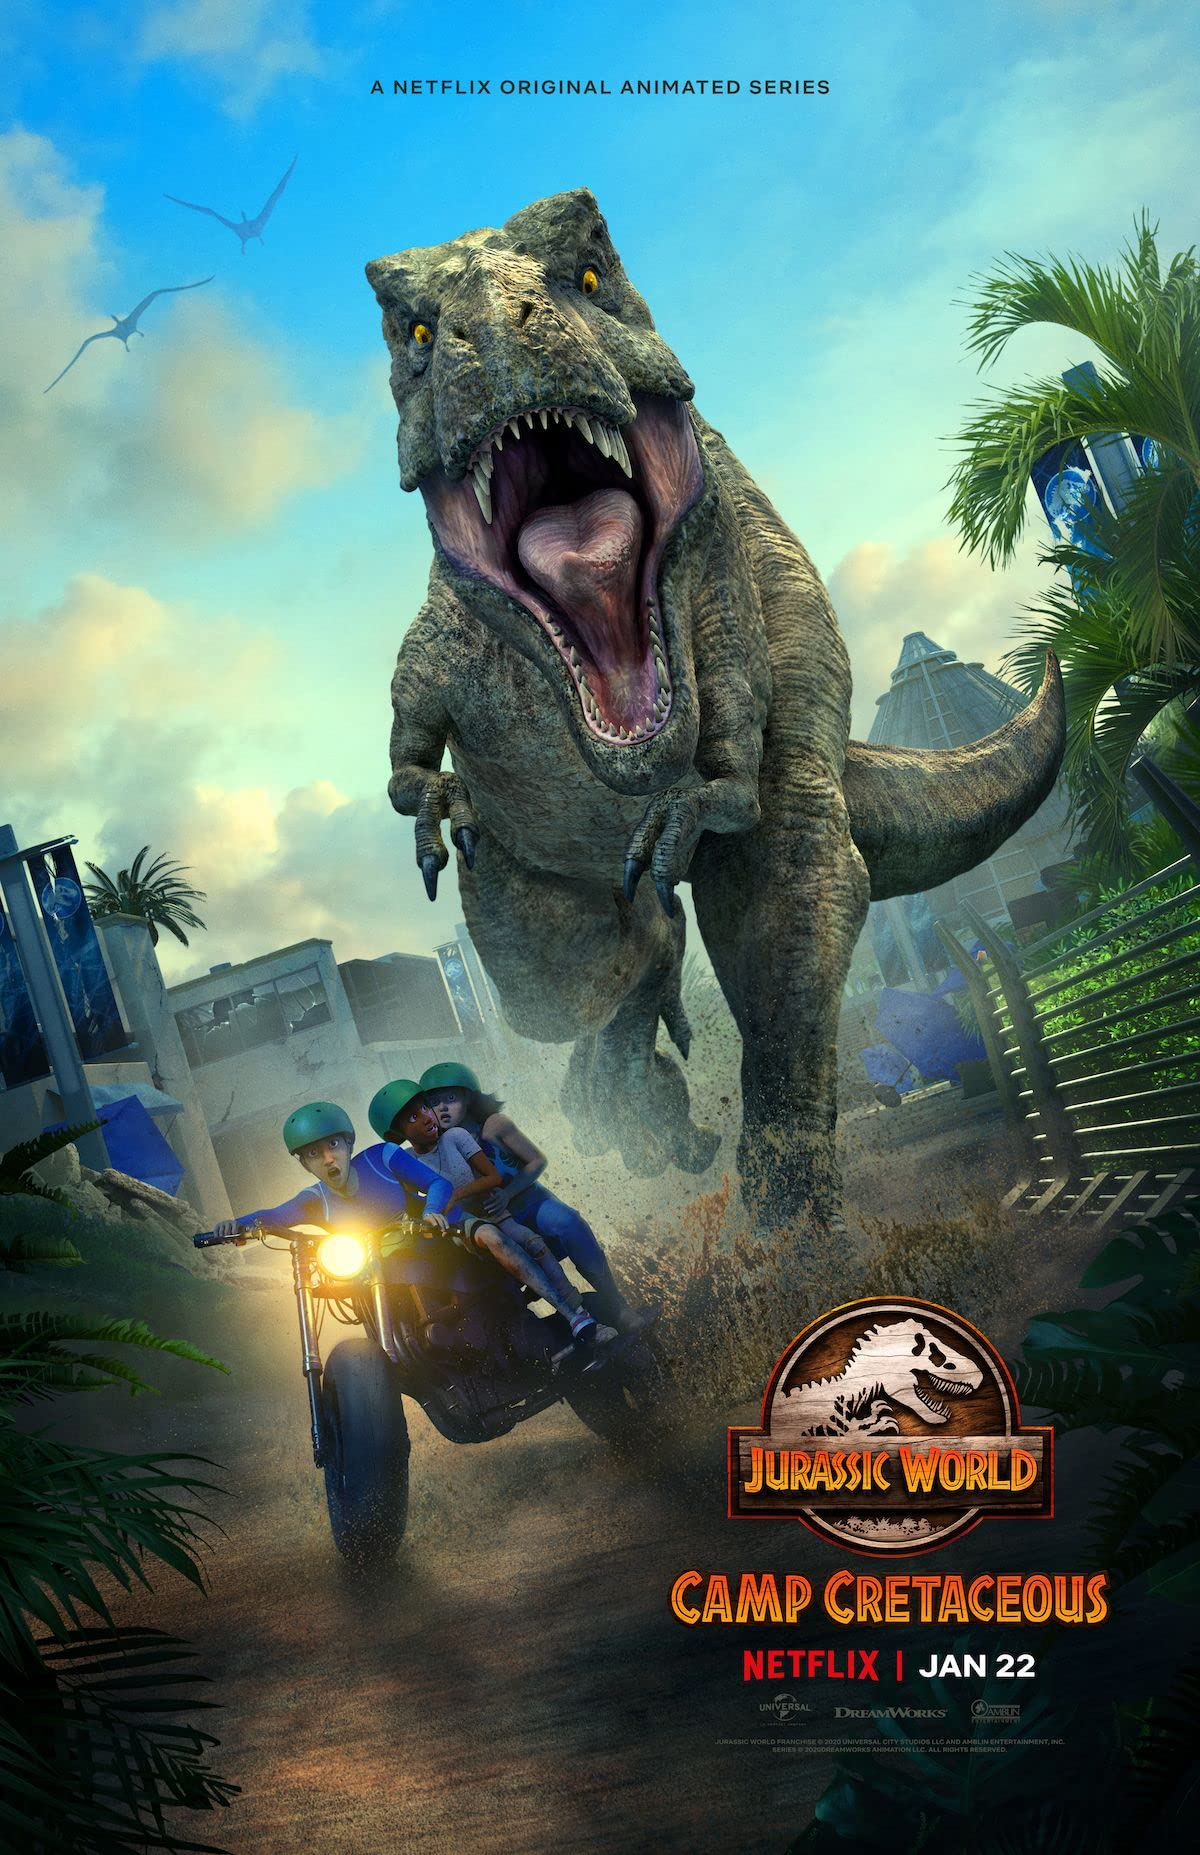 Jurassic World Camp Cretaceous S02 (2021) ORG Hindi Netflix Complete Web Series 480p HDRip 600MB